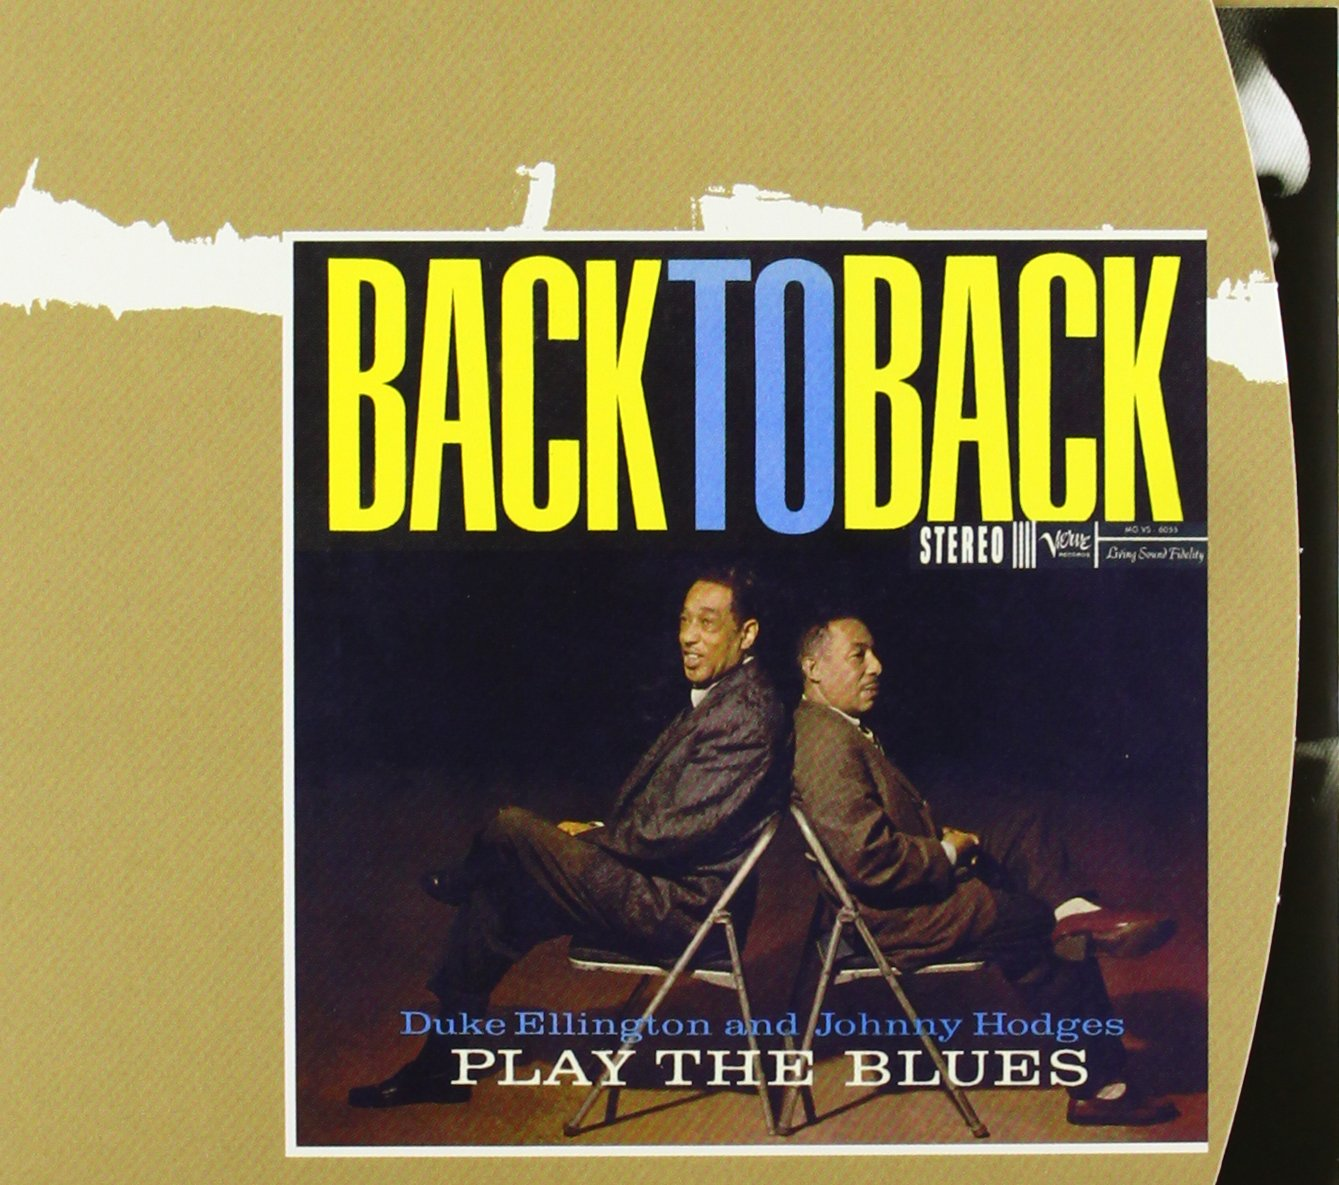 blues in orbit amazon co uk music back to back duke ellington johnny hodges play the blues